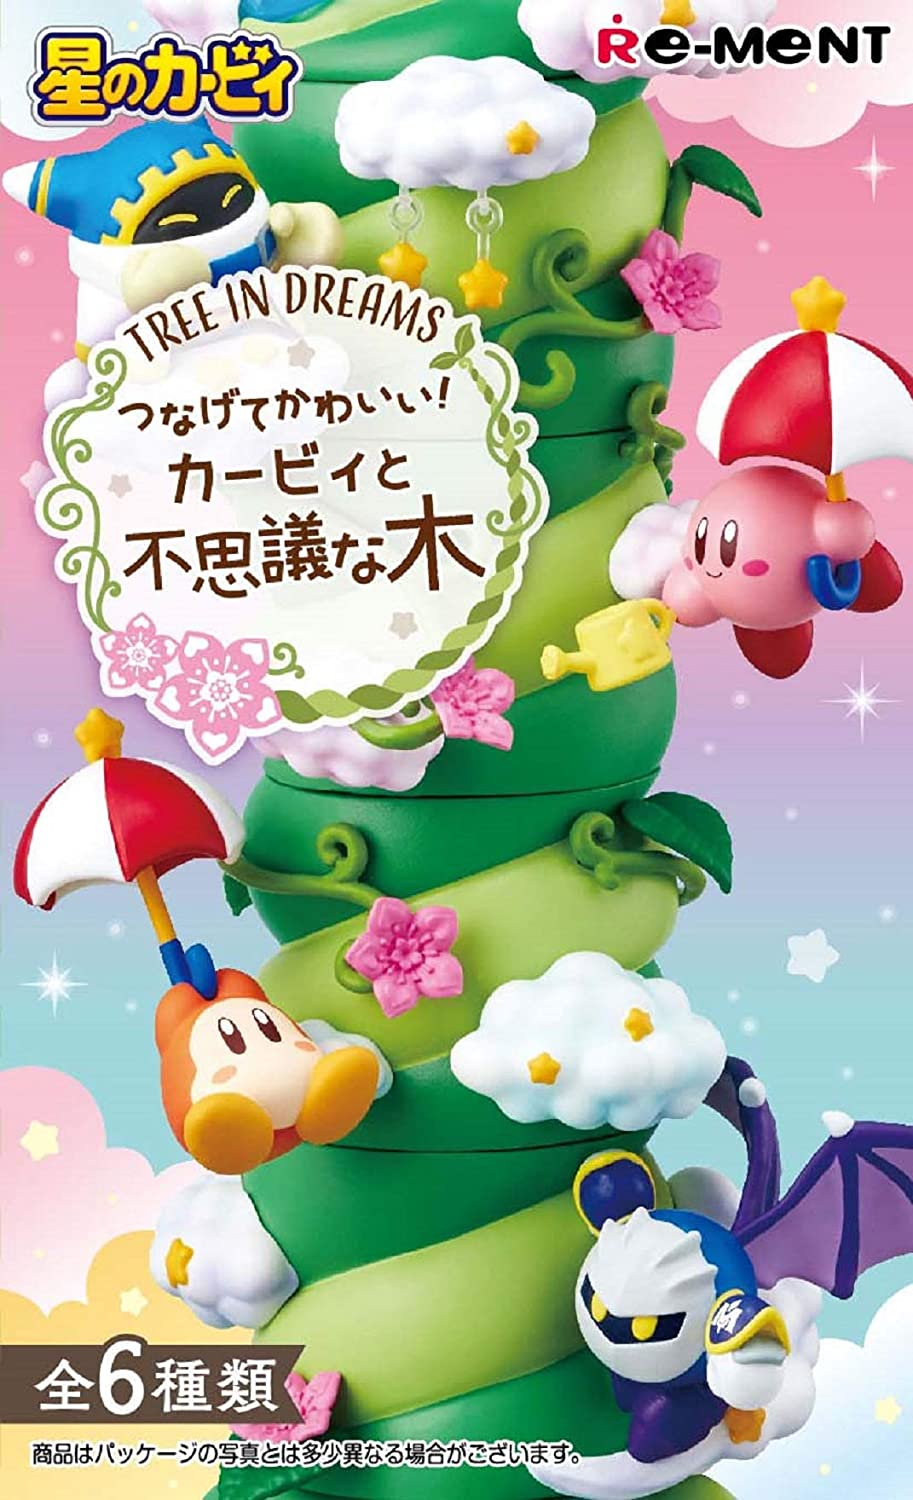 Re-Ment Kirby and Mysterious Tree Stackable Tree in Dreams - 1 Full Set of 6